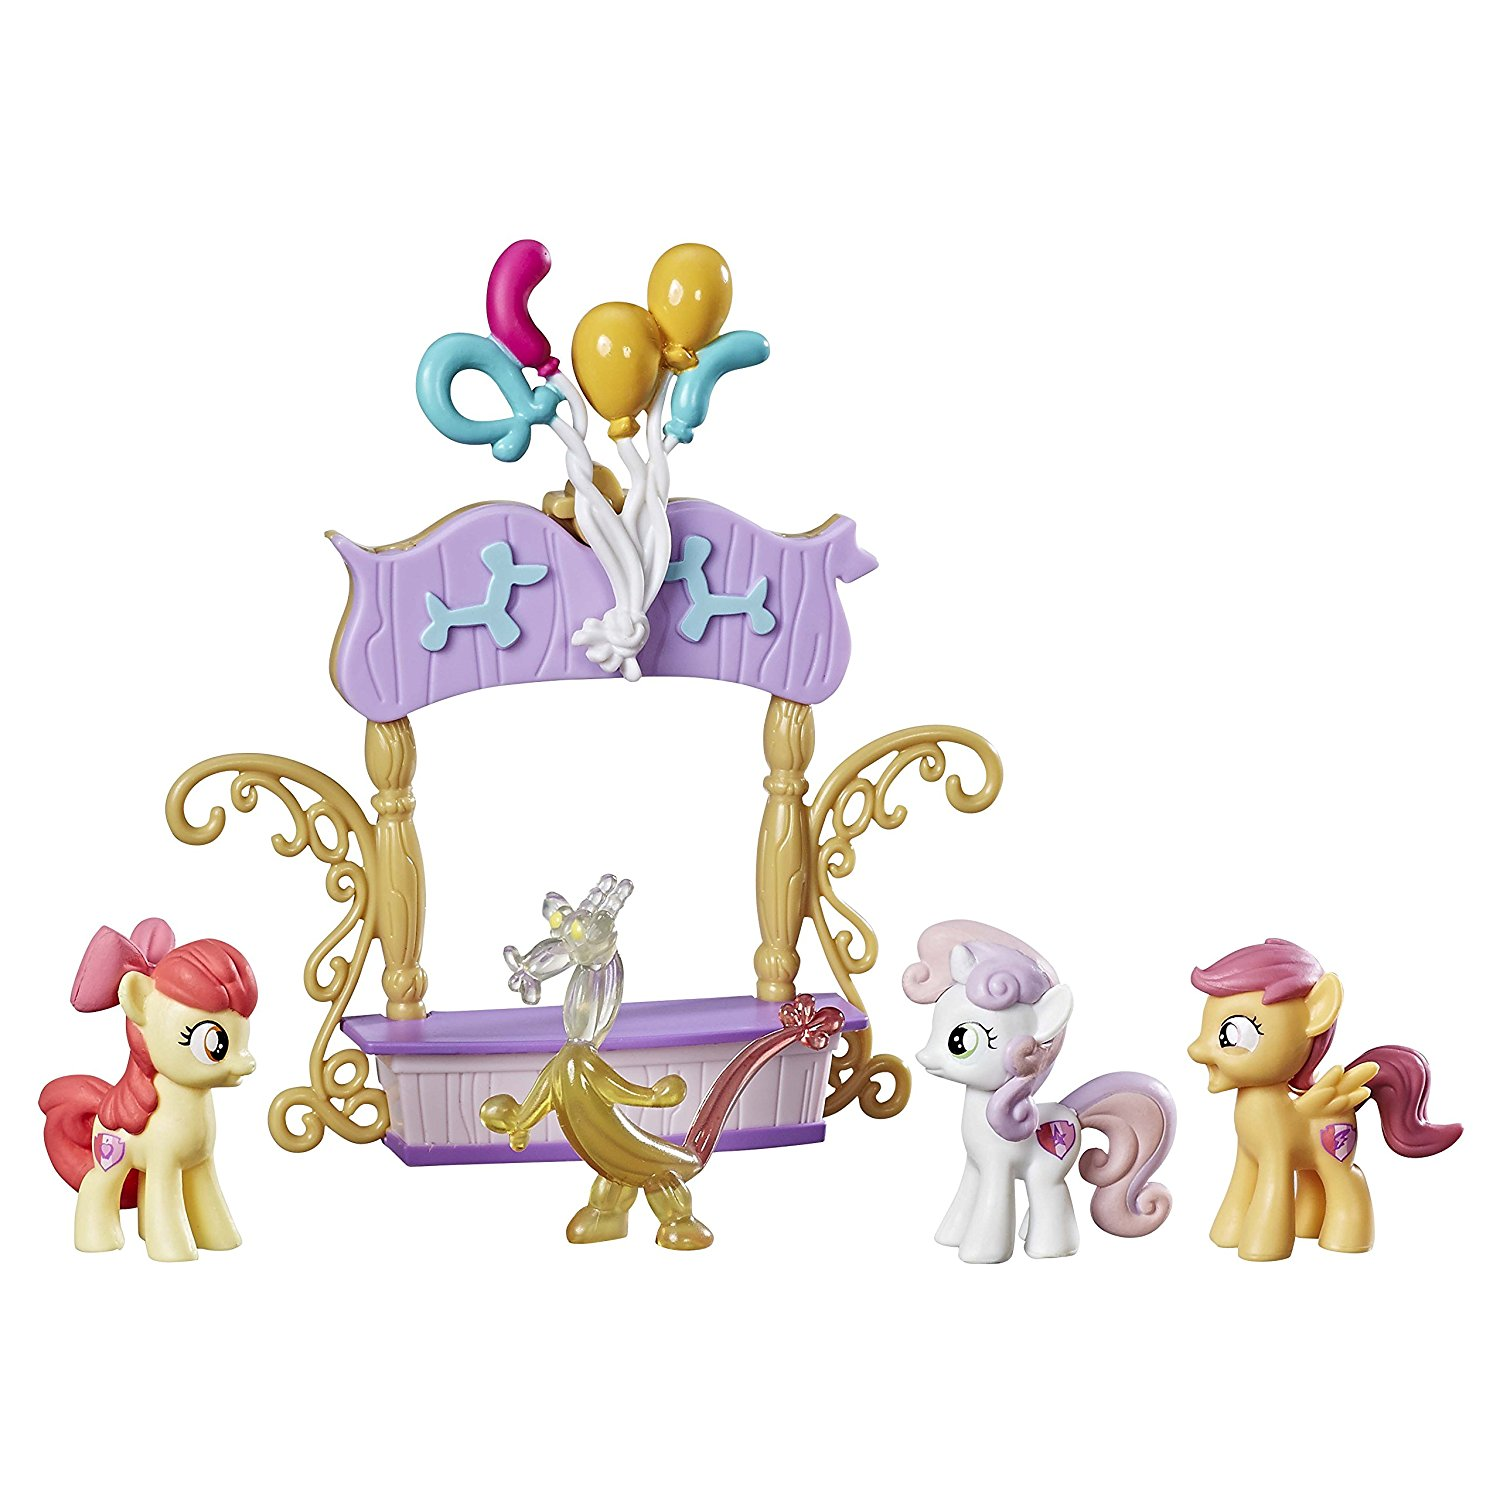 Cutie Mark Crusaders Balloon Booth Set, Inspired by the My Little Pony Friendship is Magic... by